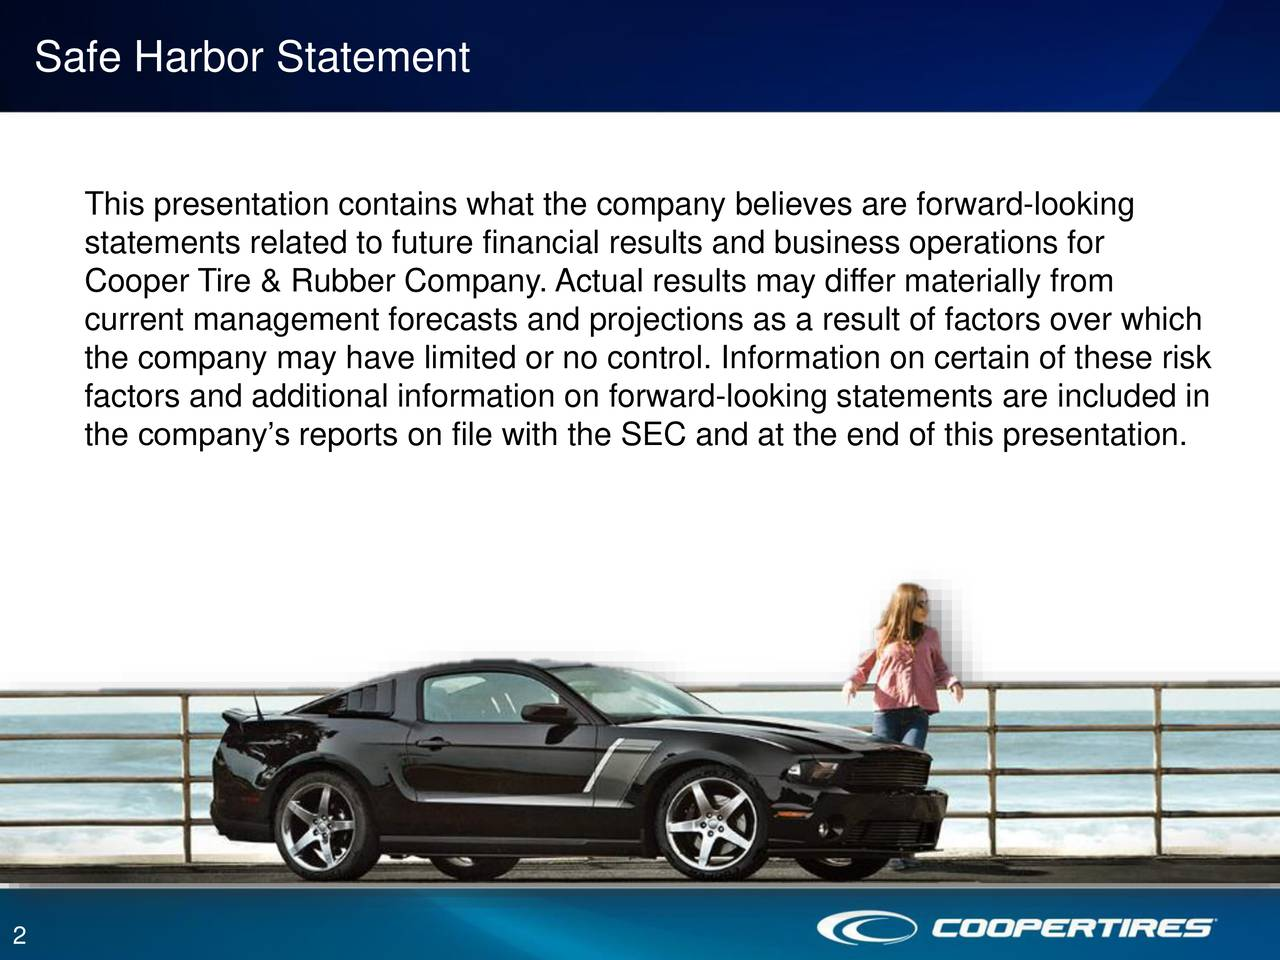 This presentation contains what the company believes are forward-looking statements related to future financial results and business operations for Cooper Tire & Rubber Company. Actual results may differ materially from current management forecasts and projections as a result of factors over which the company may have limited or no control. Information on certain of these risk factors and additional information on forward-looking statements are included in the companys reports on file with the SEC and at the end of this presentation. 2